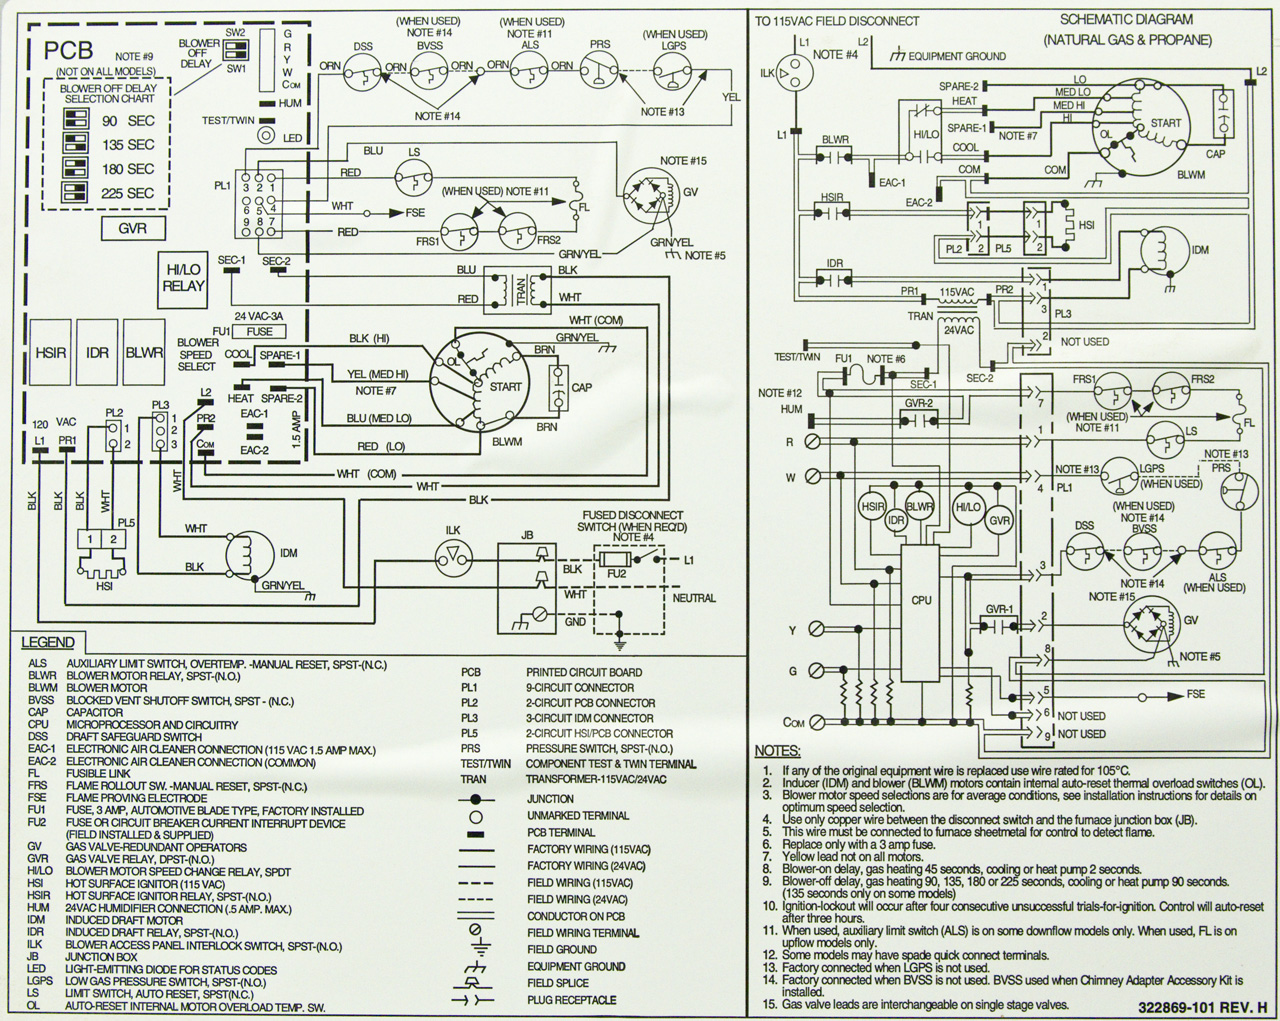 Older Gas Furnace Wiring Diagram - efcaviation.com